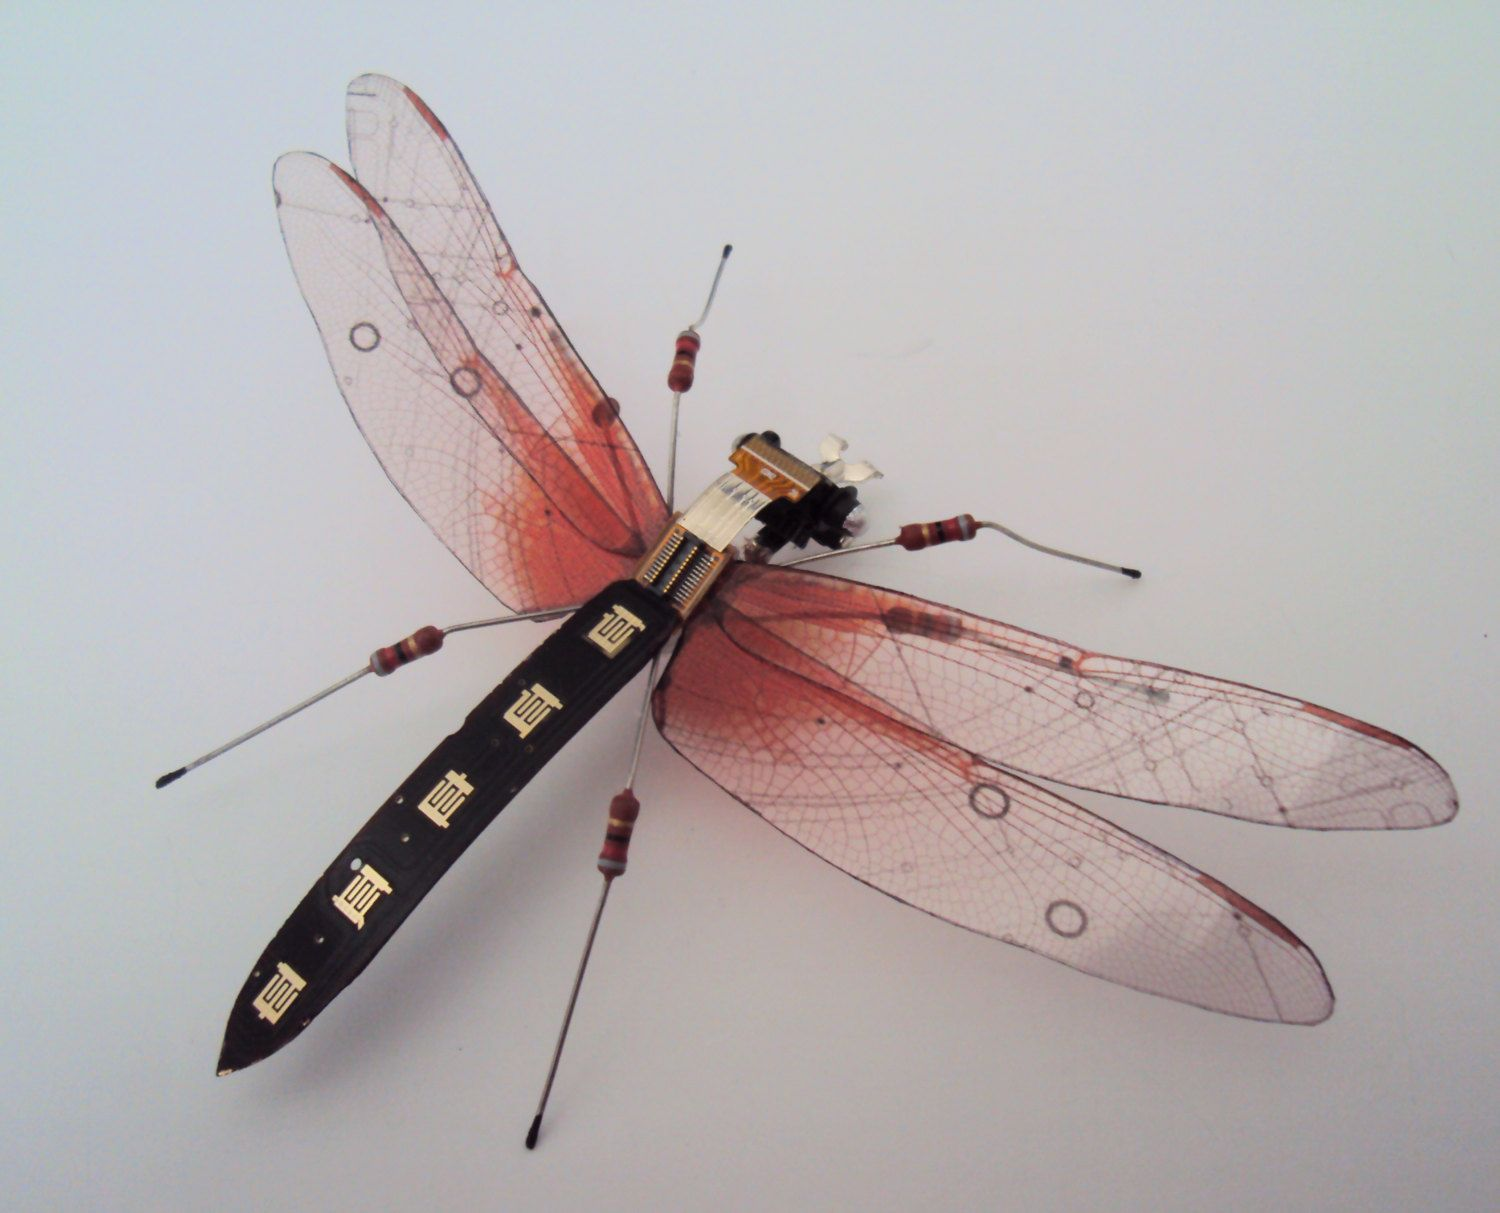 The Black And Red Computer Component Dragonfly By Dewleaf